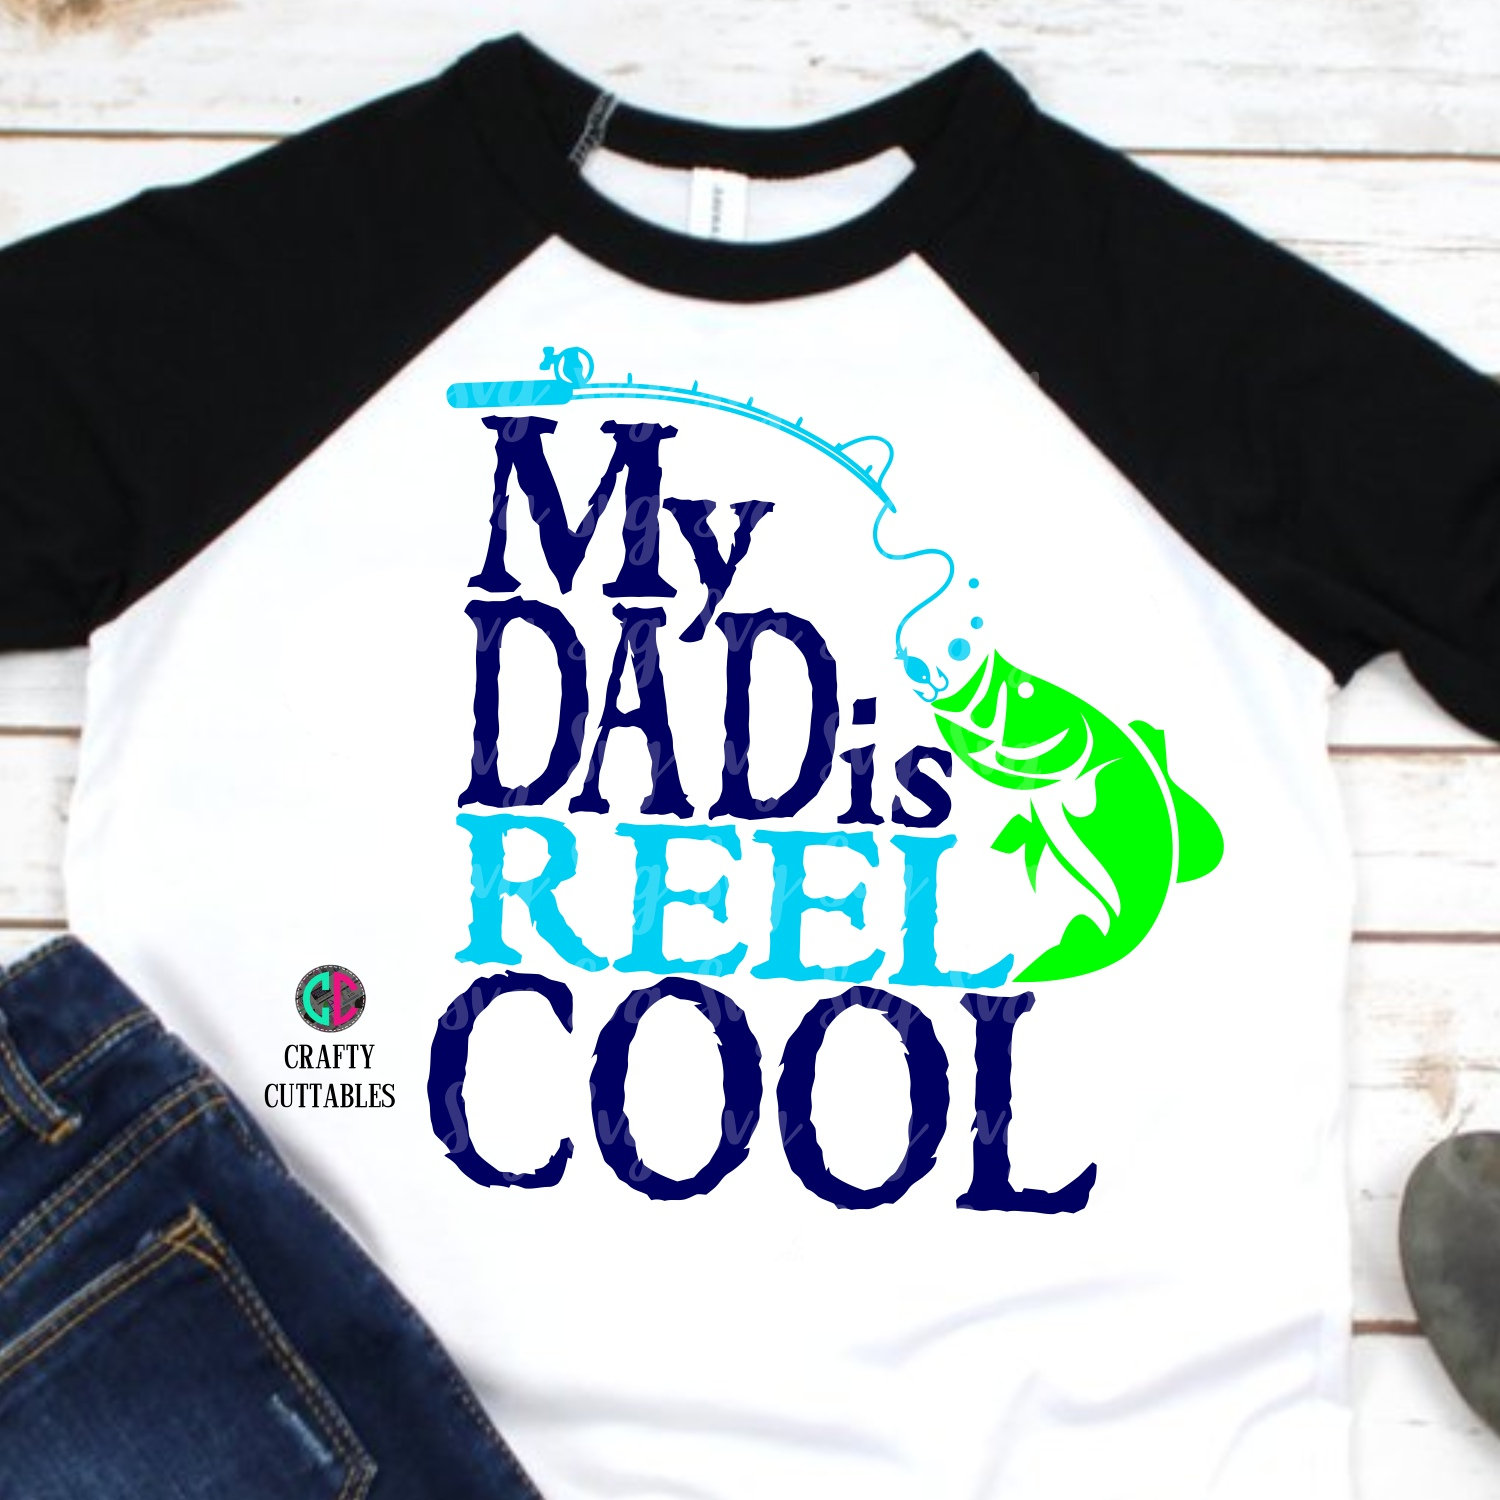 Free Svg black let s go fishing hand painted fish and fish hook phrase. My Dad Is Reel Cool Svg Real Dad Svg Fathers Day Svg Fathers Day Fathers Day Gift Fathers Day Shirt Fishing Svg Cool Dad Svg Fishing Rod Svg Svg For Cricut SVG, PNG, EPS, DXF File